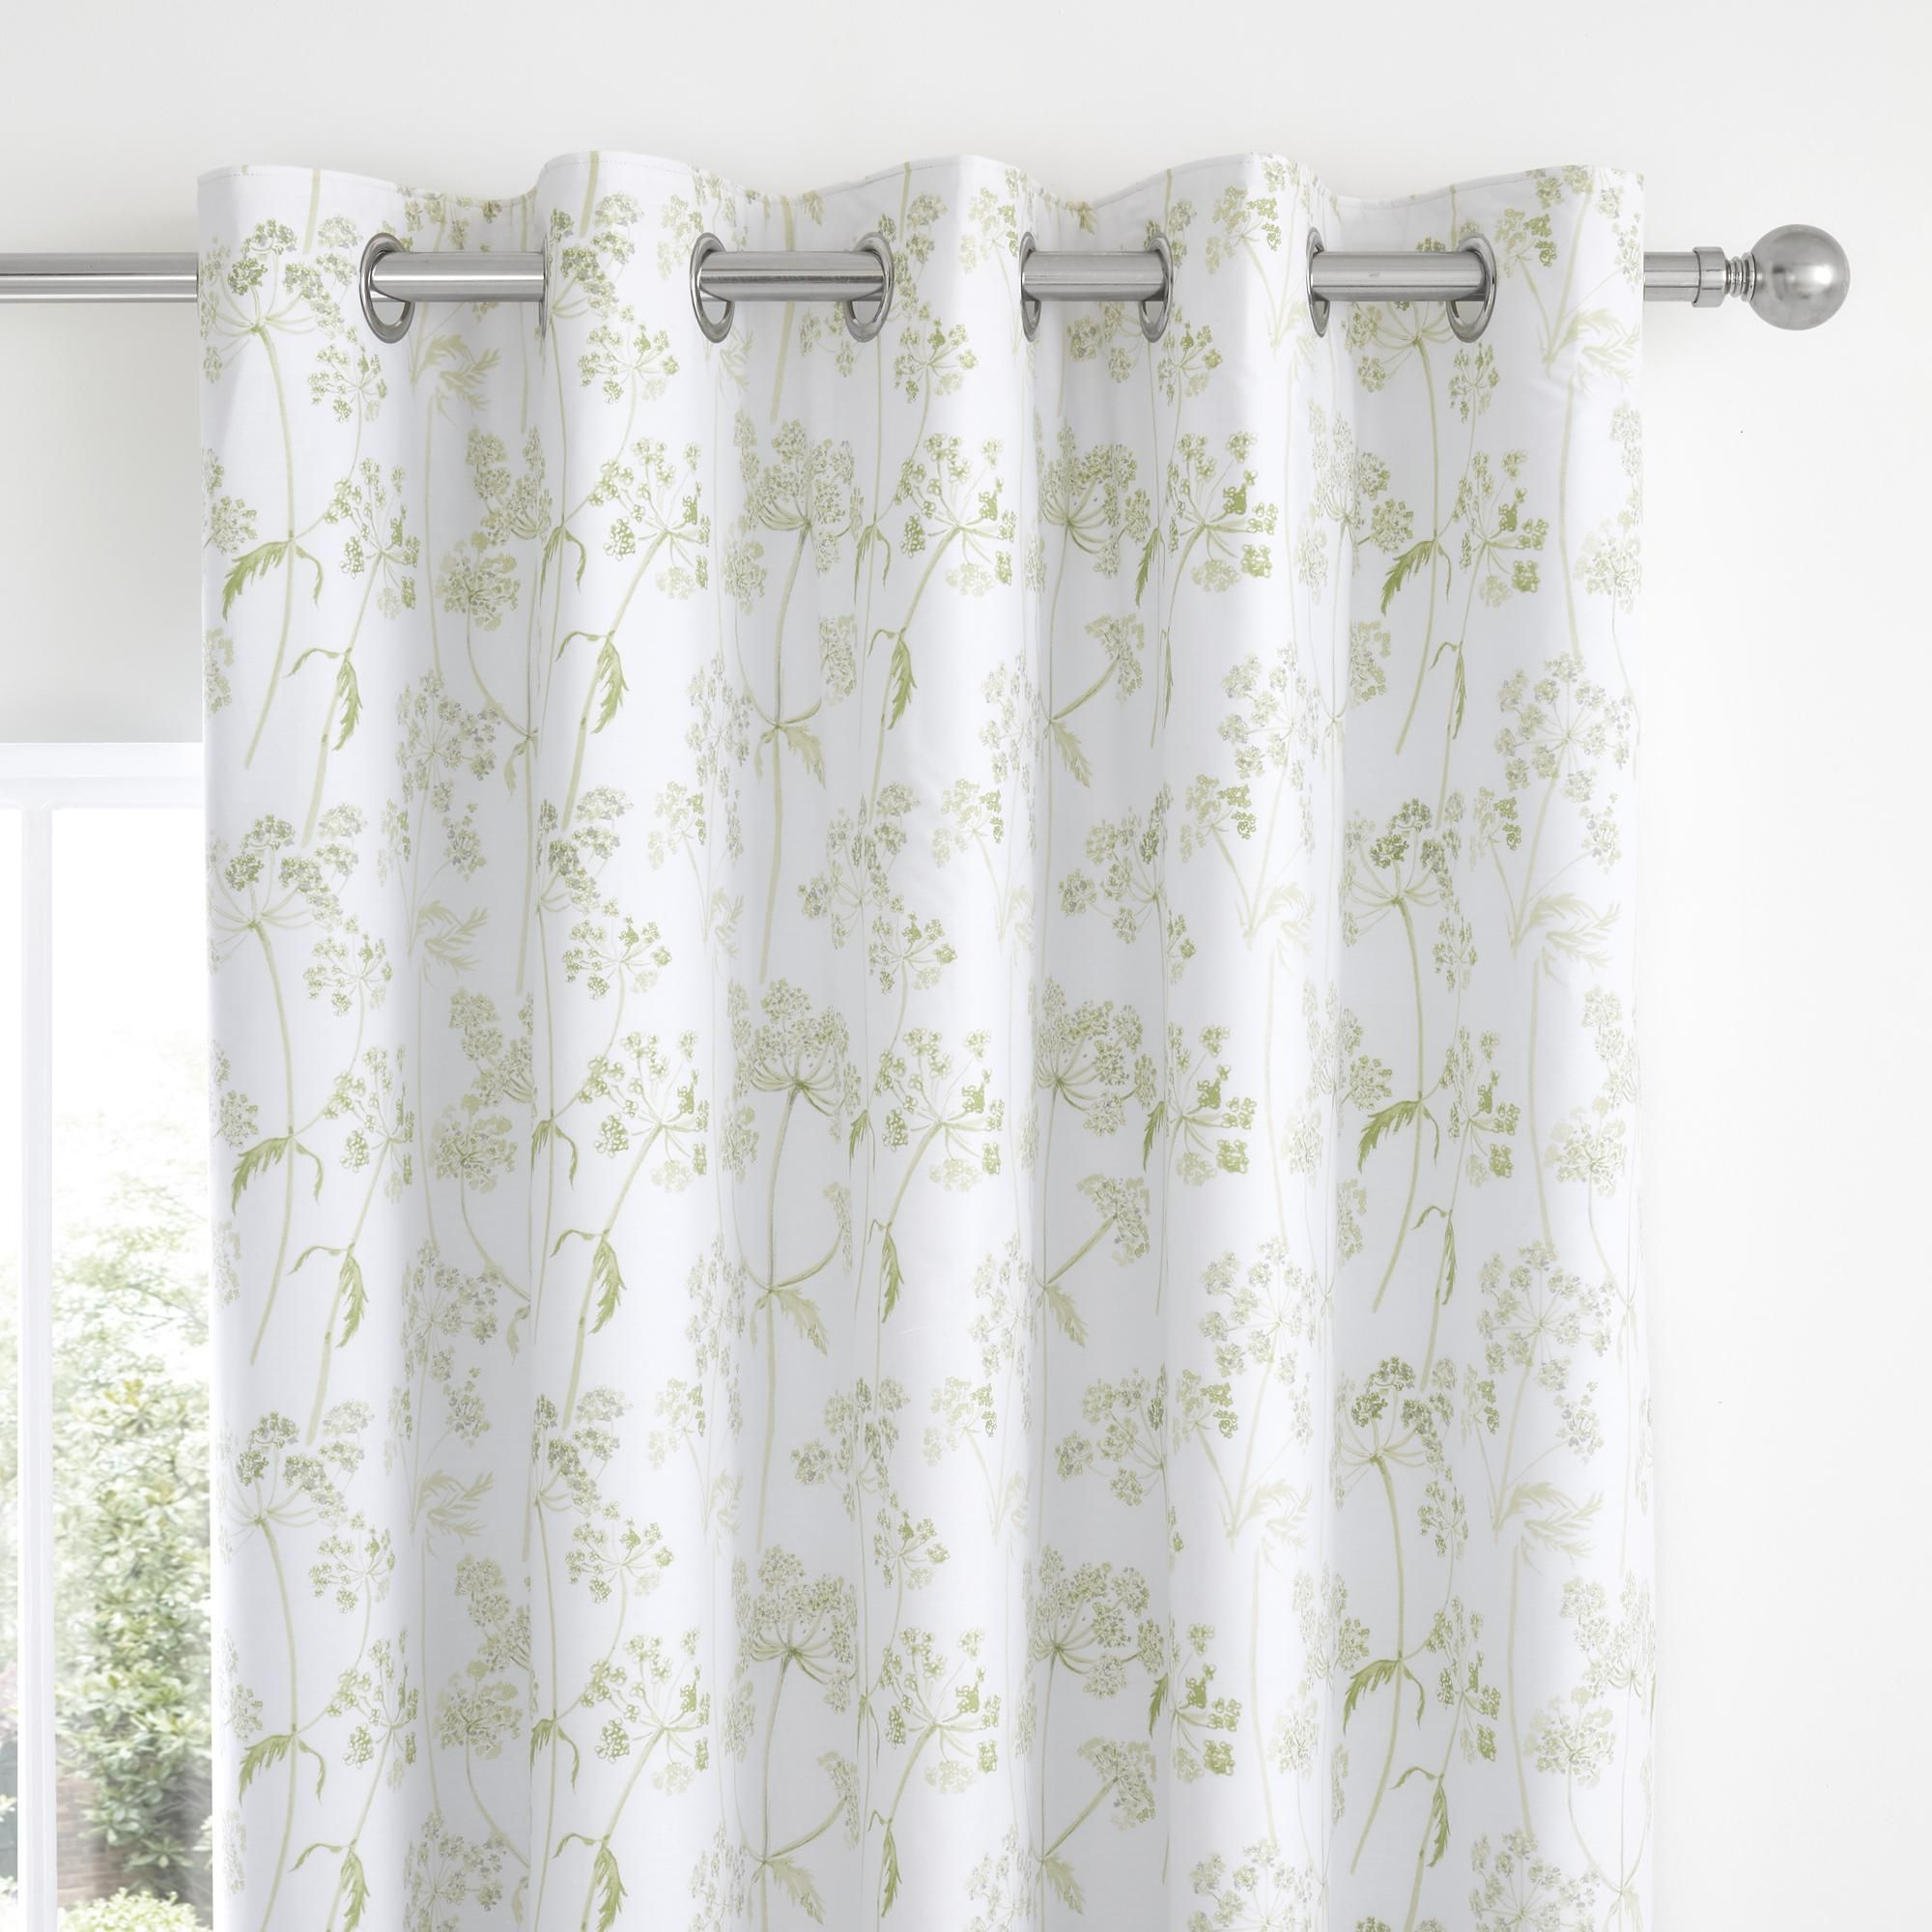 Felicity White Floral Blackout Eyelet Curtains In 2020 Blackout